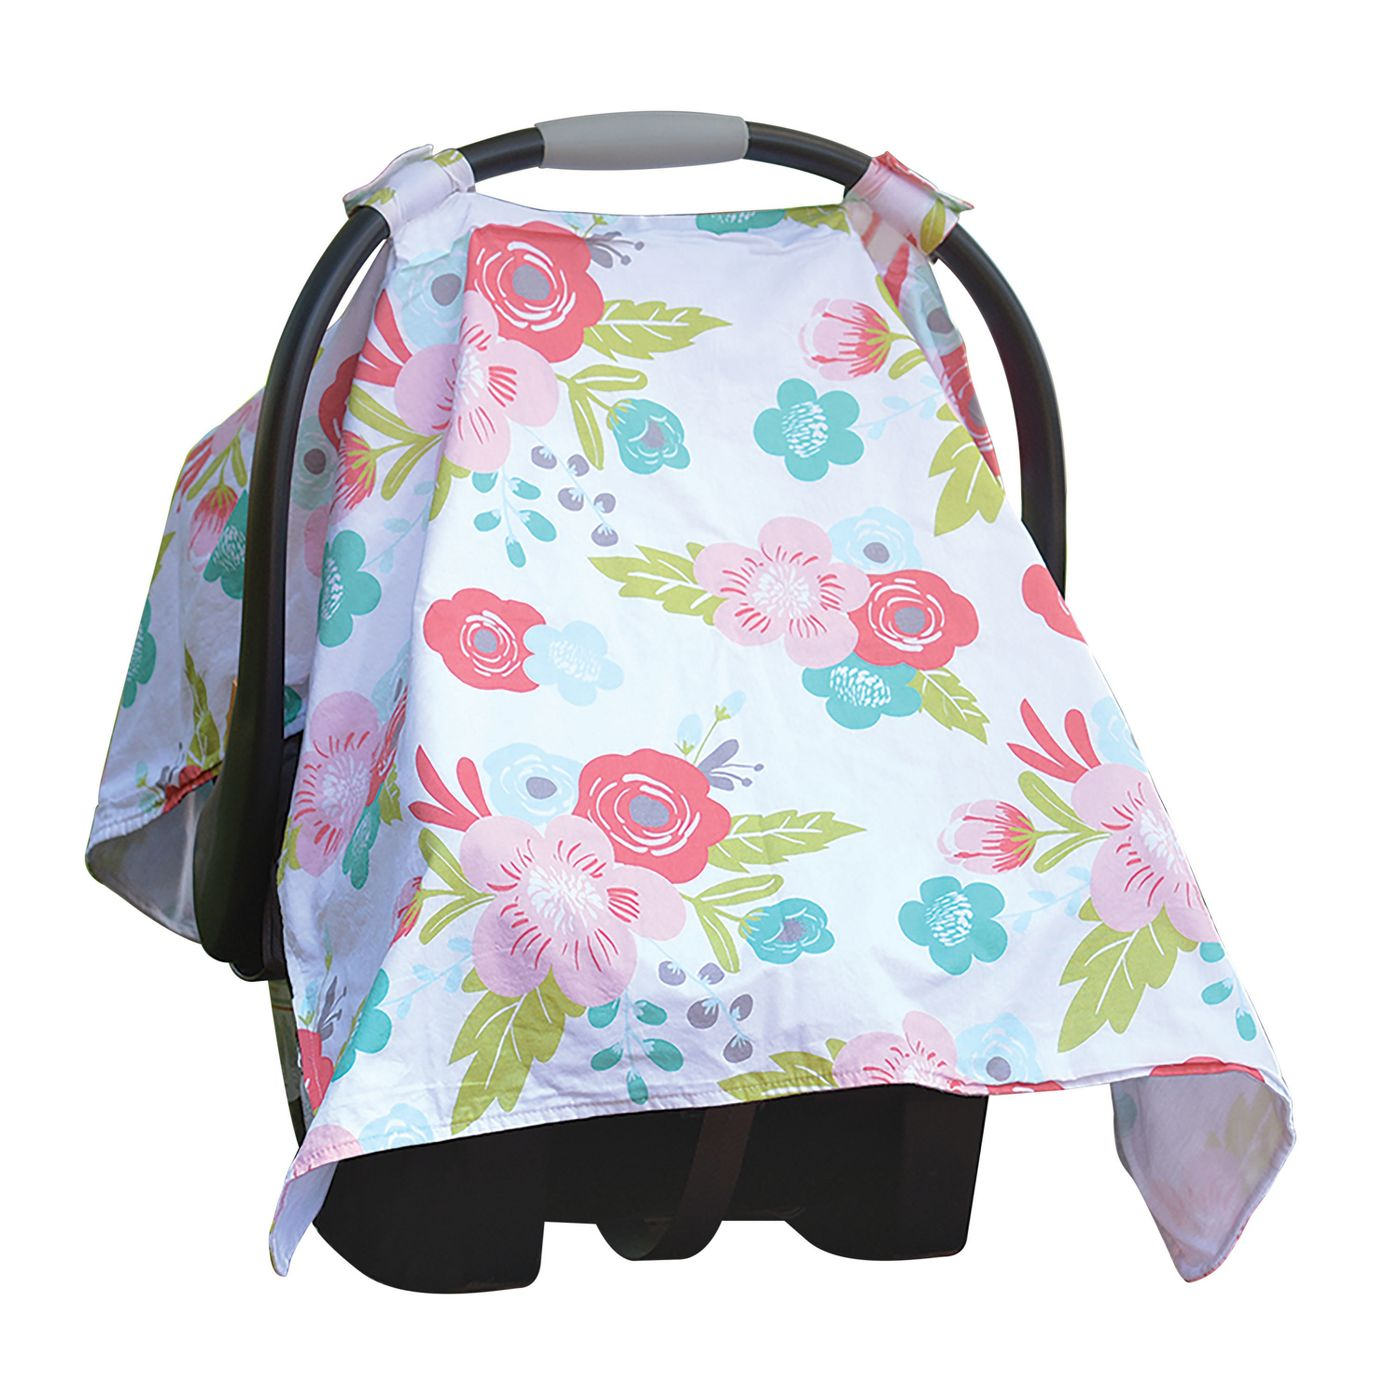 GO by Goldbug Floral Canopy Cover